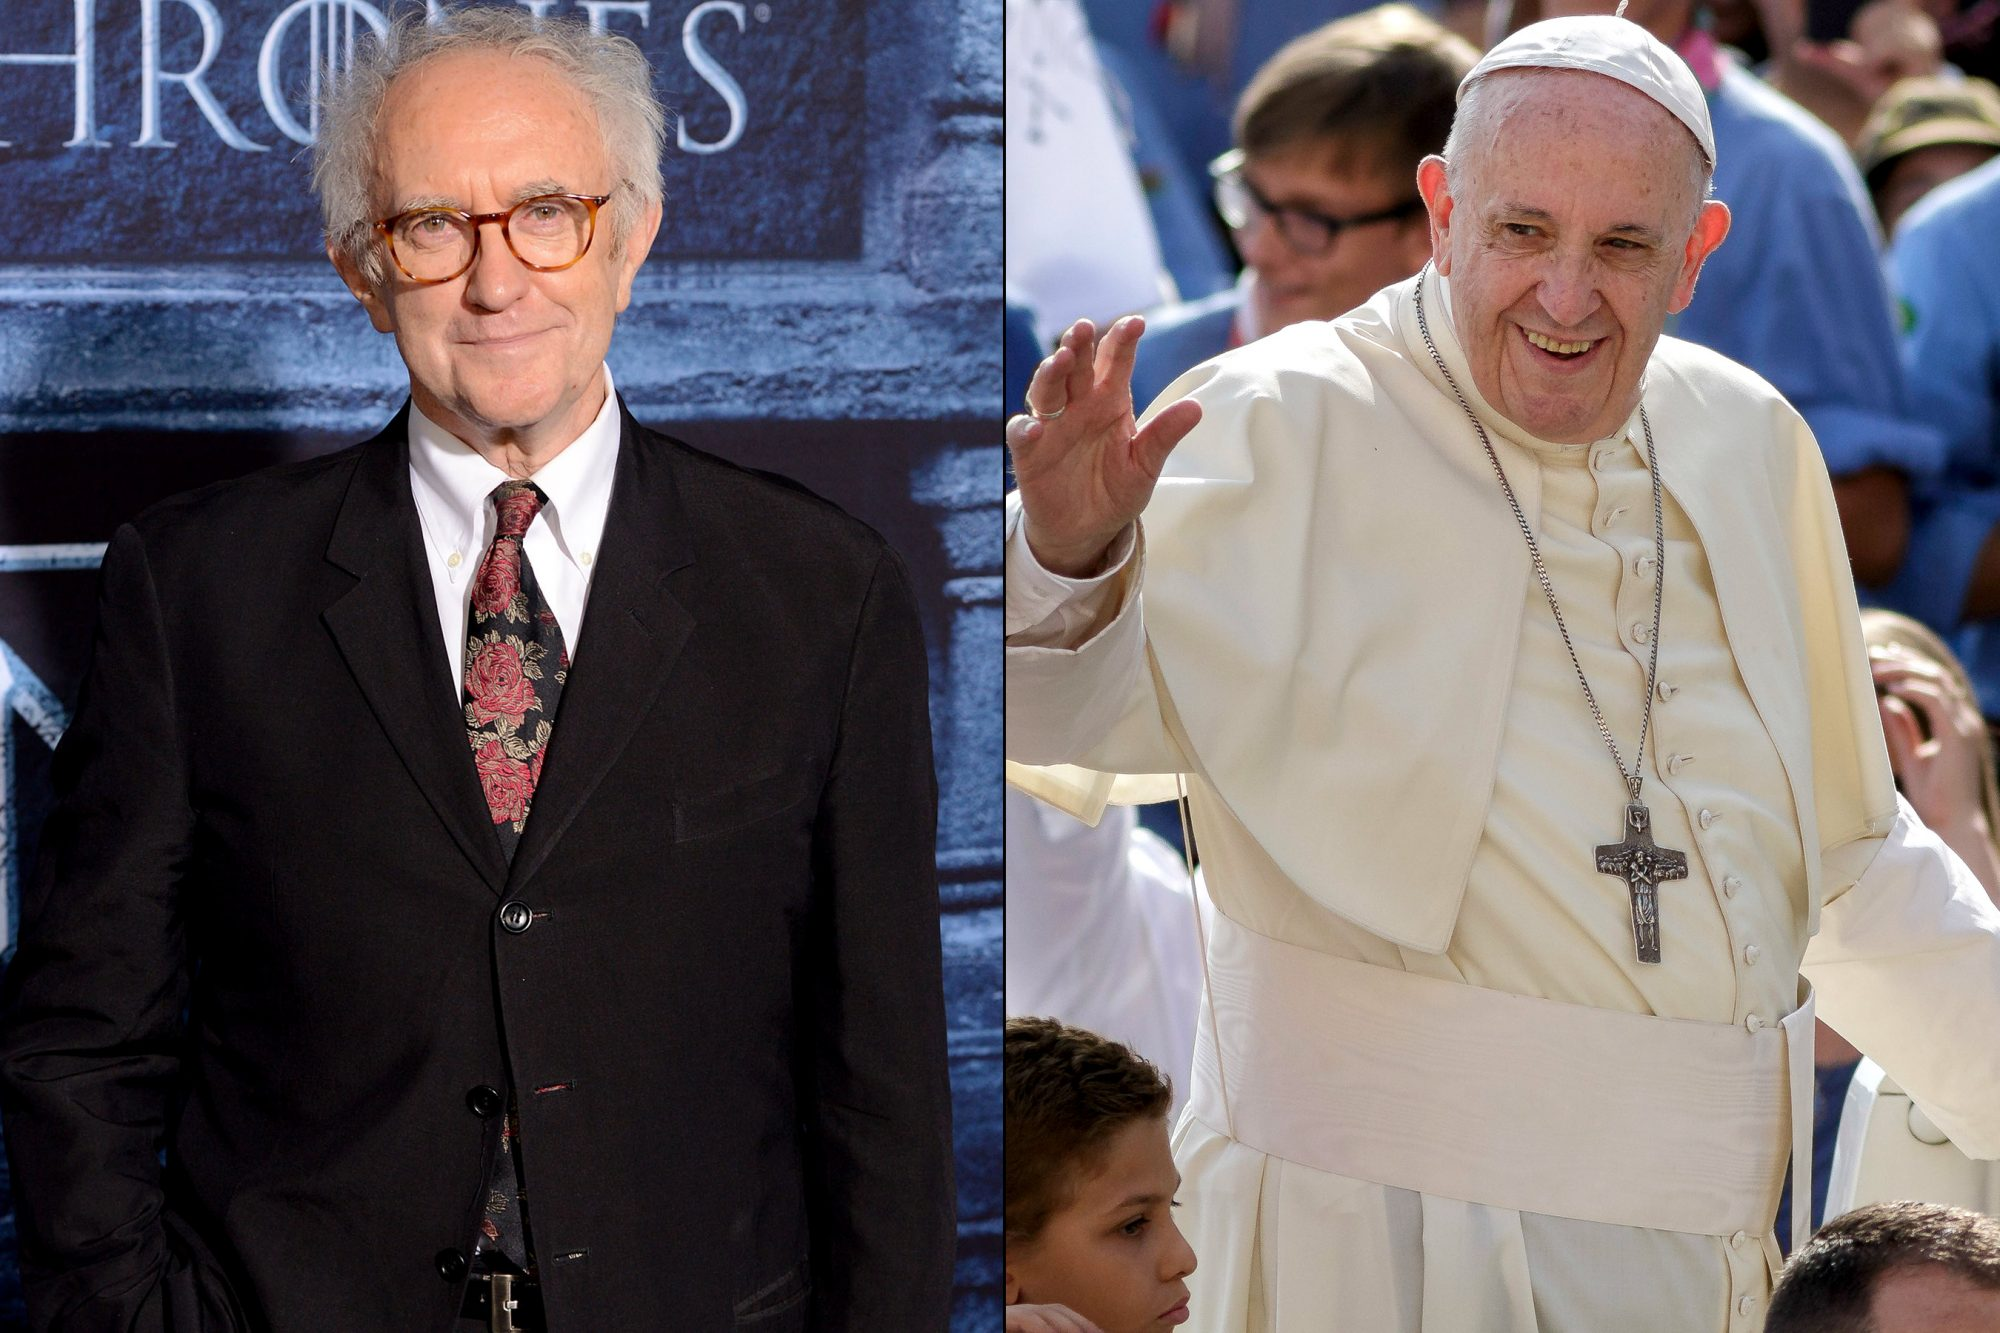 Jonathan Pryce / Pope Francis